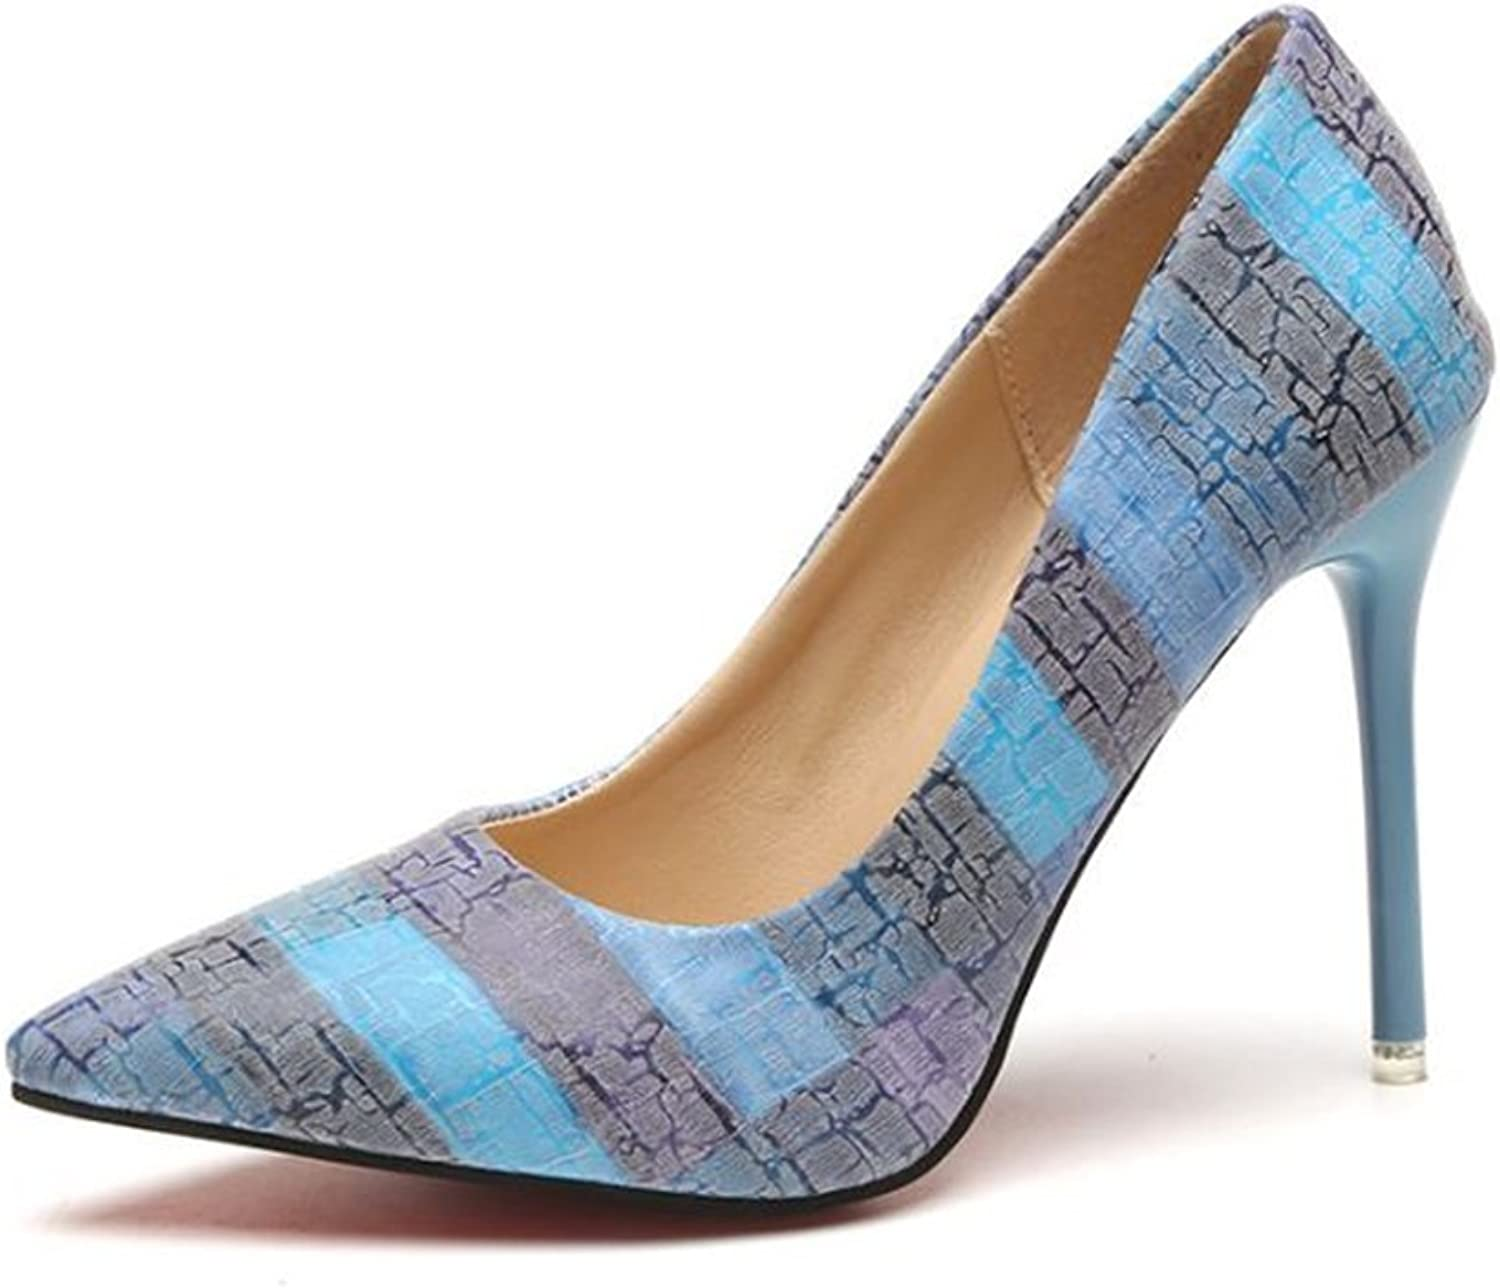 SunMMan Pointy Toe Pumps for Women,Patent Gradient High Heels Usual Dress shoes